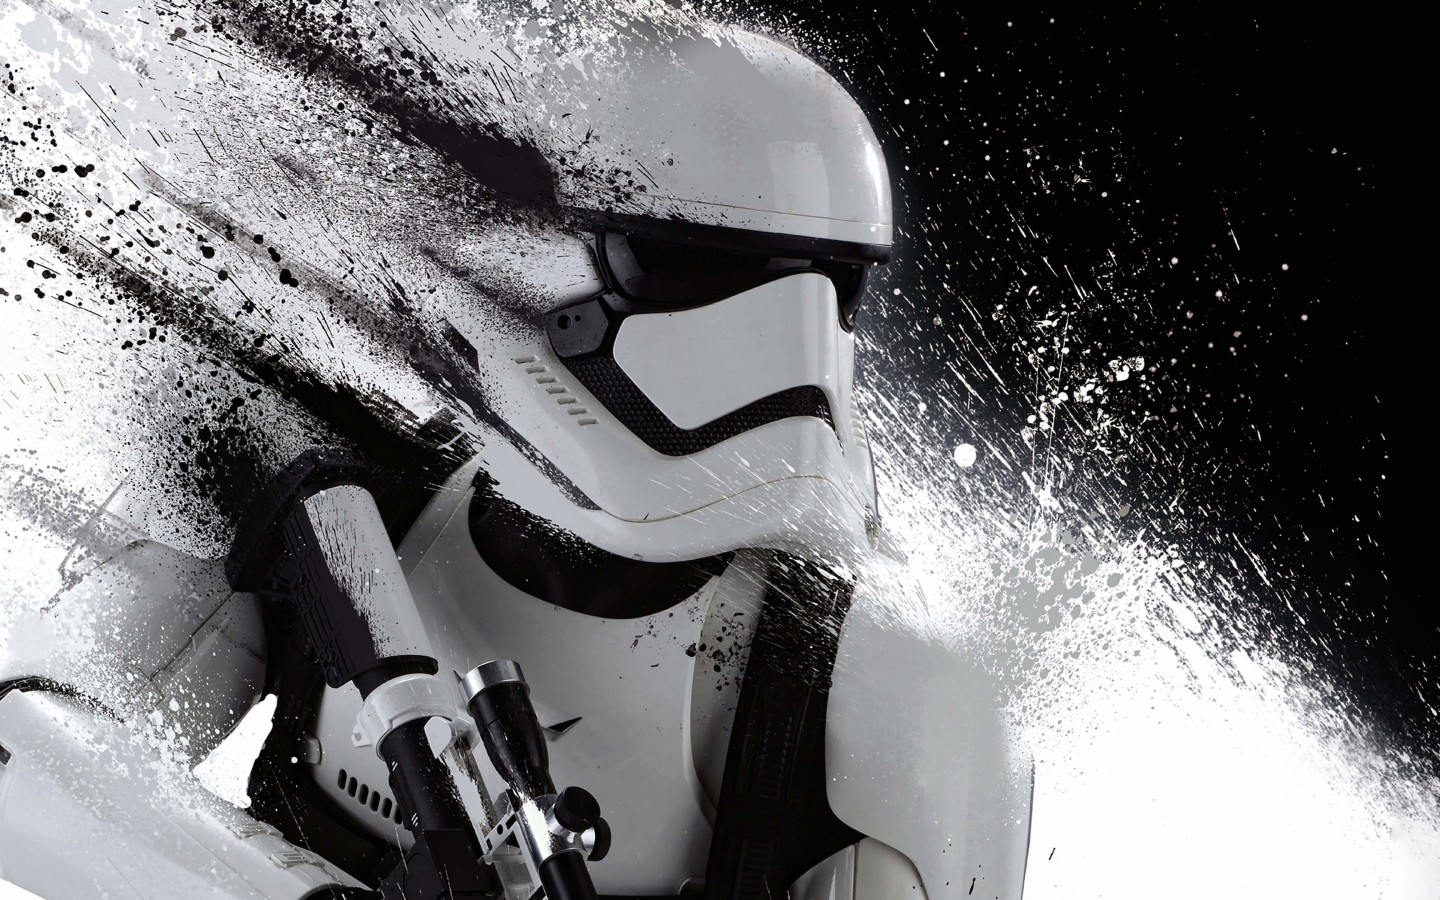 Stormtrooper Splatter Wallpaper for Desktop 1440x900